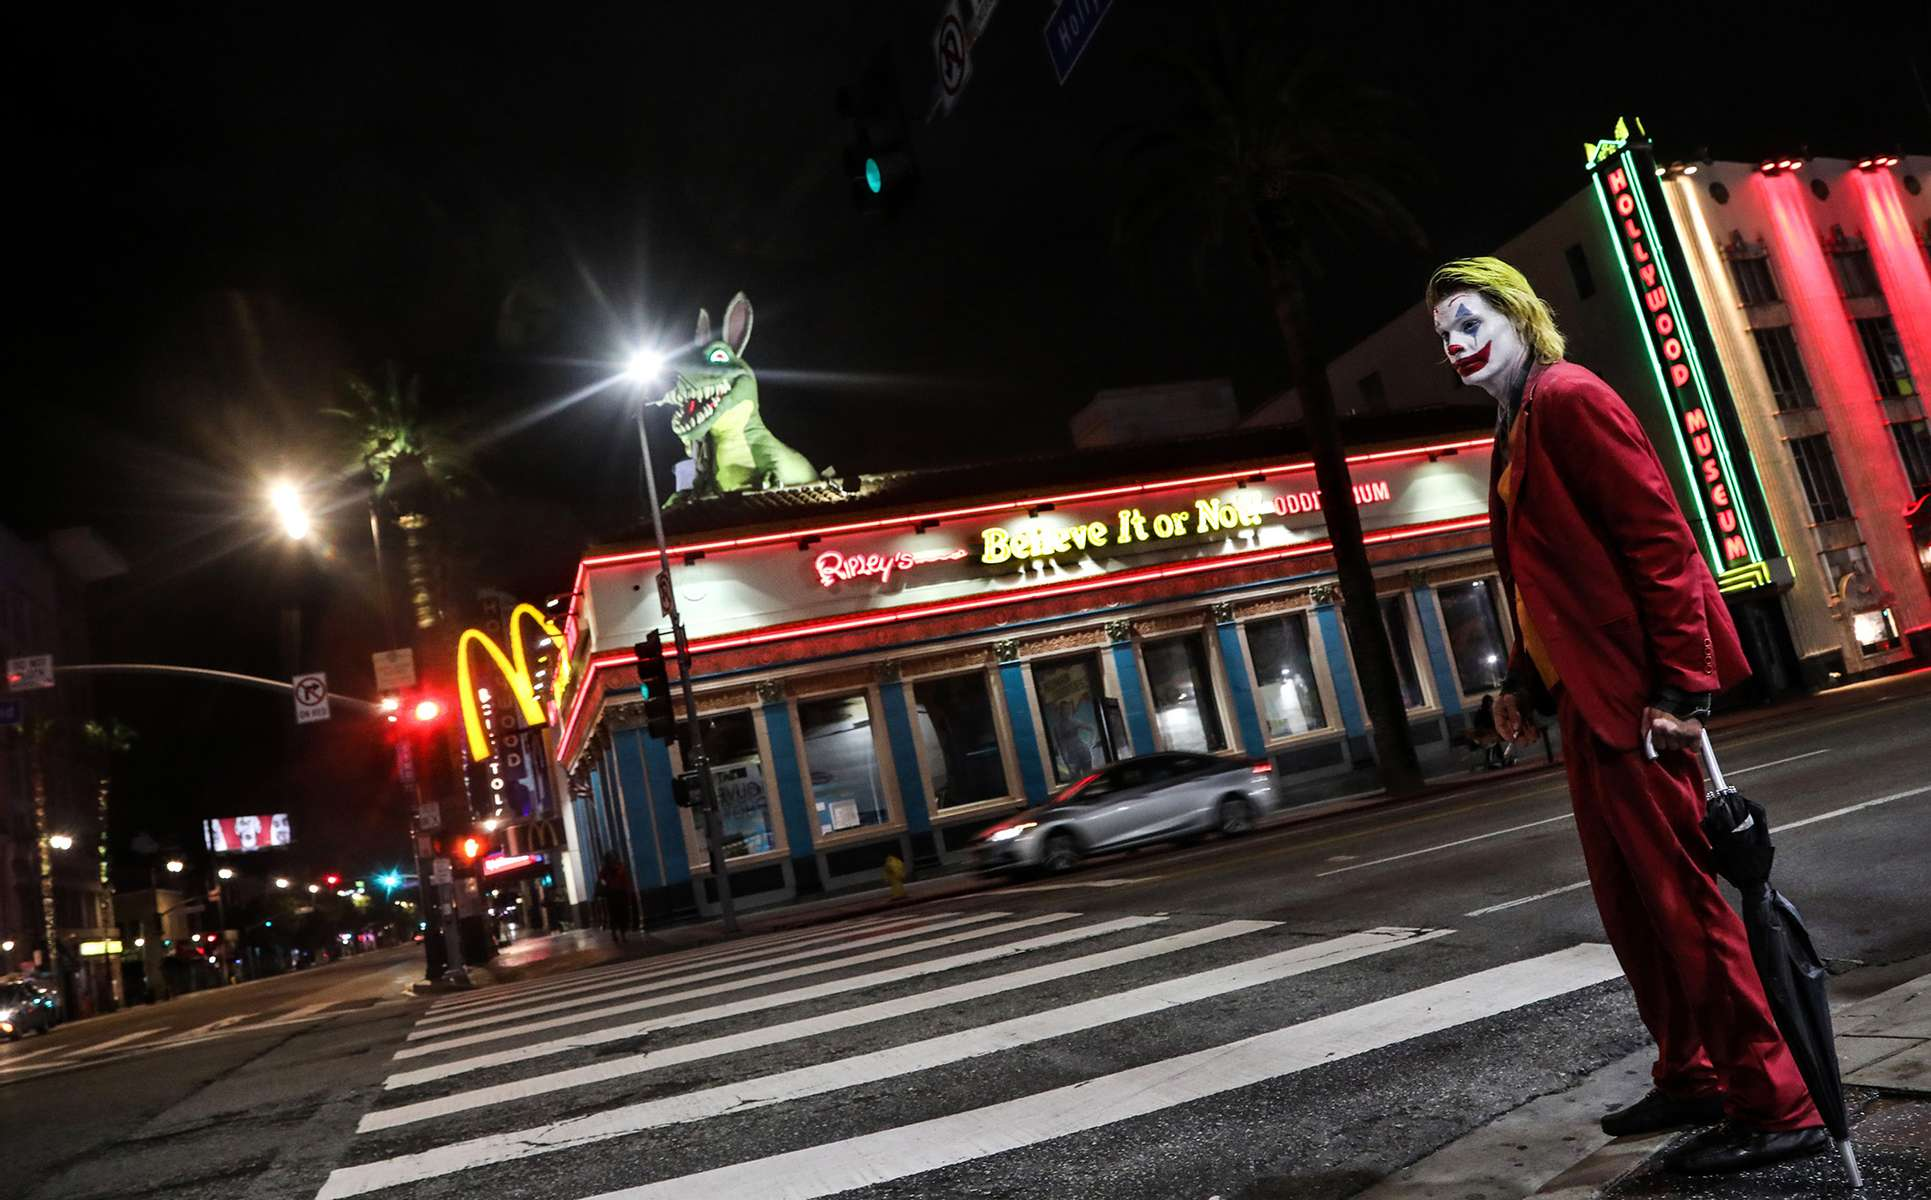 Joker, who wants to be called that way, walks home on an almost deserted Hollywood Boulevard, one hour before the beginning of the 'safer at home' order requiring people to stay home, and most {quote}non-essential{quote} businesses to close, on March 19, 2020, in Los Angeles, California. The order has just been announced a few hours before and everybody was in shock. He was upset about the order, because he wonders how many people are going to be able to survive during the next few weeks.